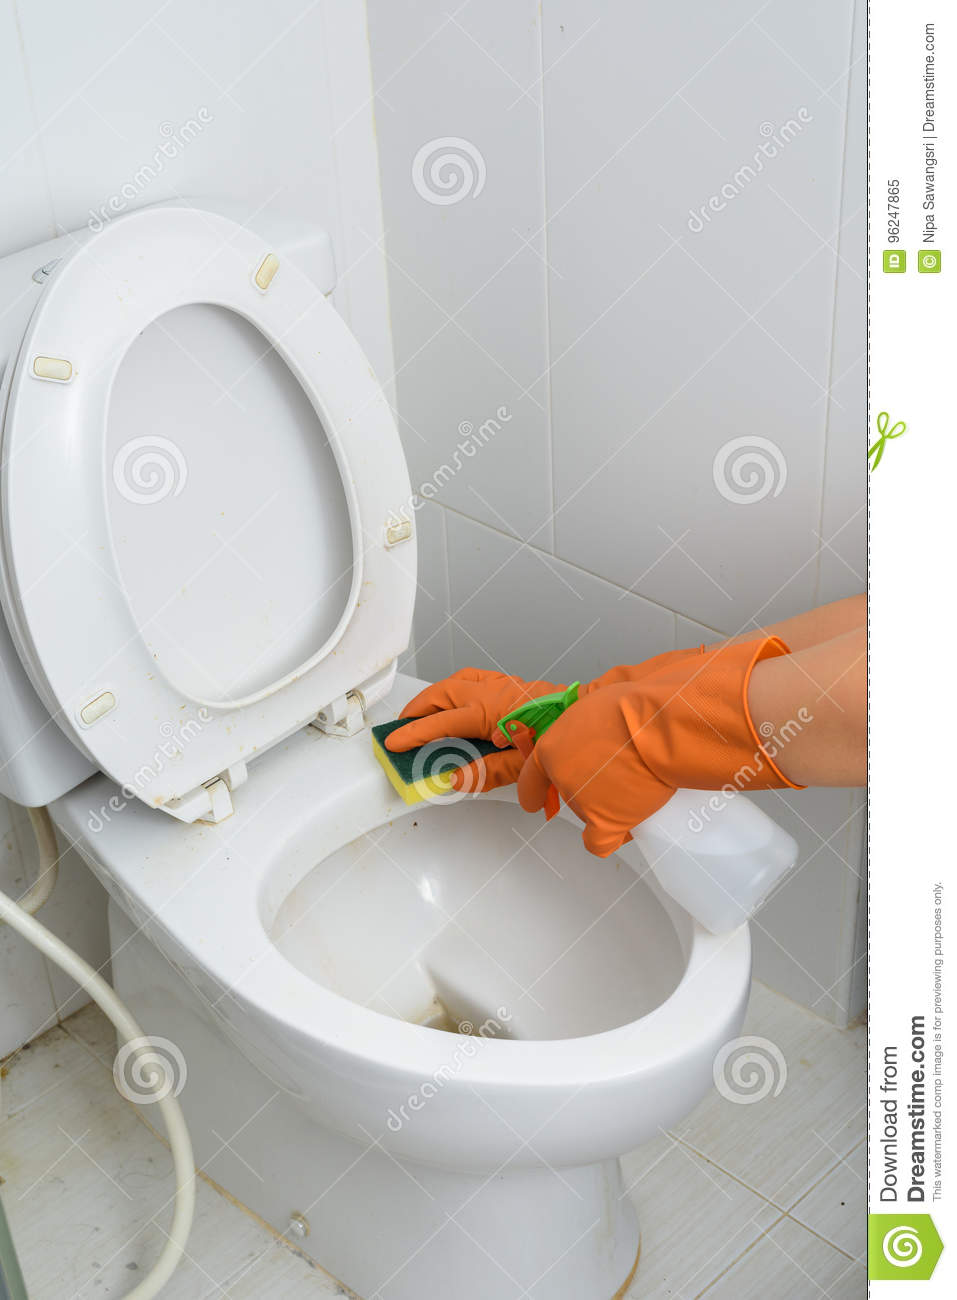 Hands In Orange Gloves Cleaning WC, Toilet, Lavatory Stock Image ...